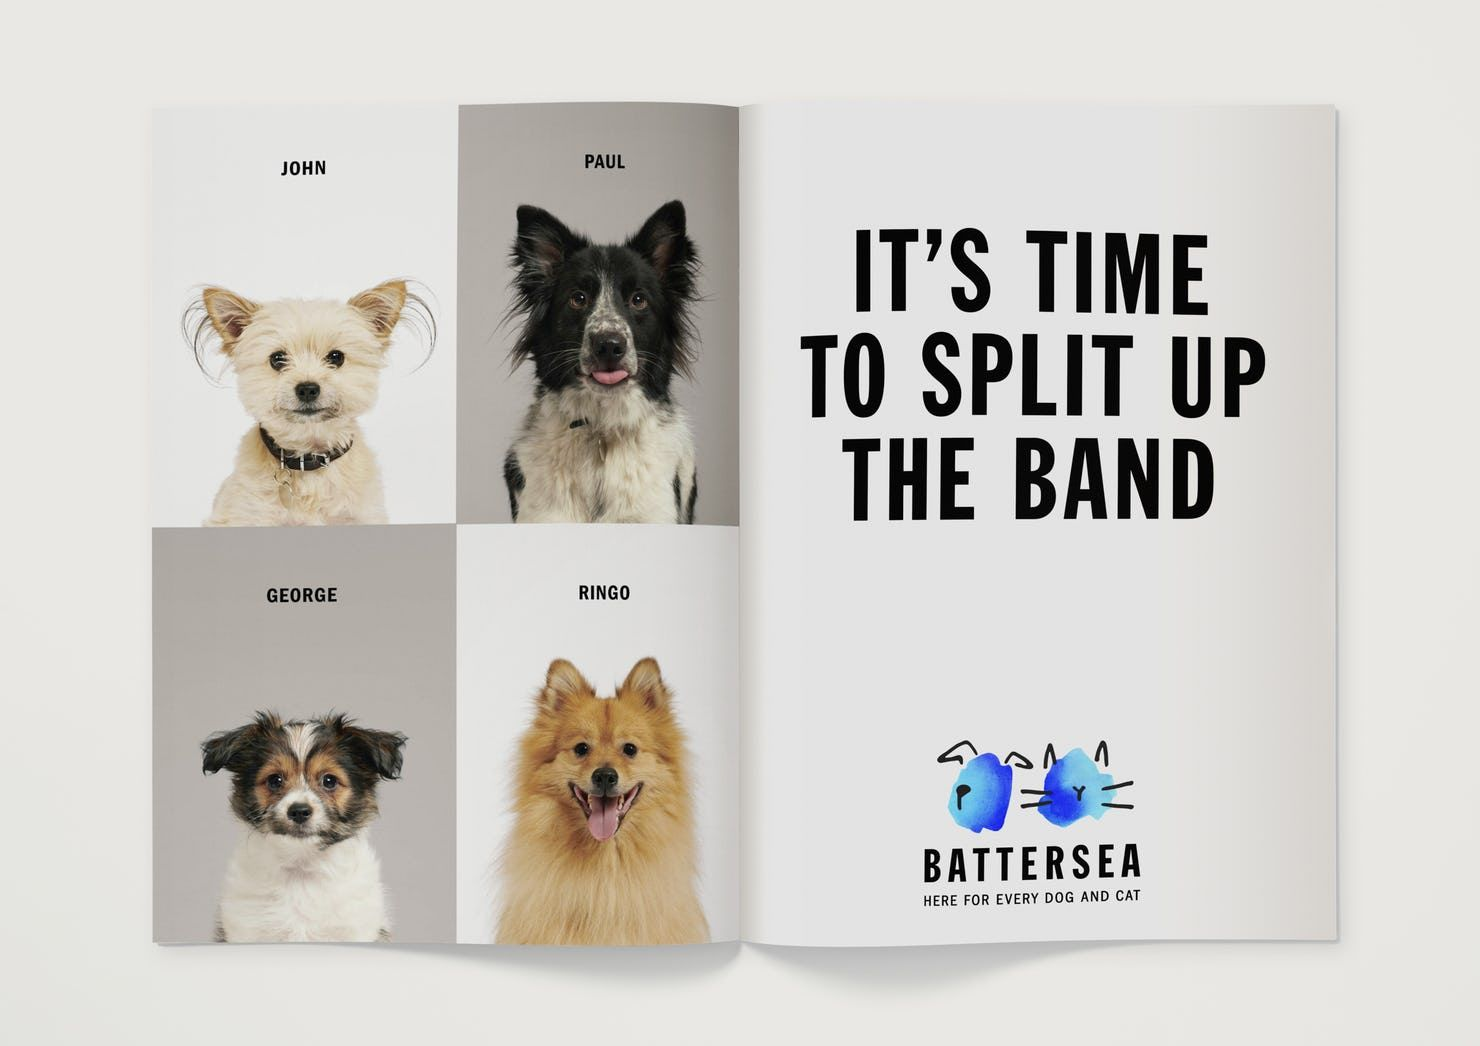 Battersea Brand Strategy Tone Of Voice And Visual Identity For One Of Britain S Oldest And Most Famous With Images Dog Charities Animal Charities Animal Rescue Center